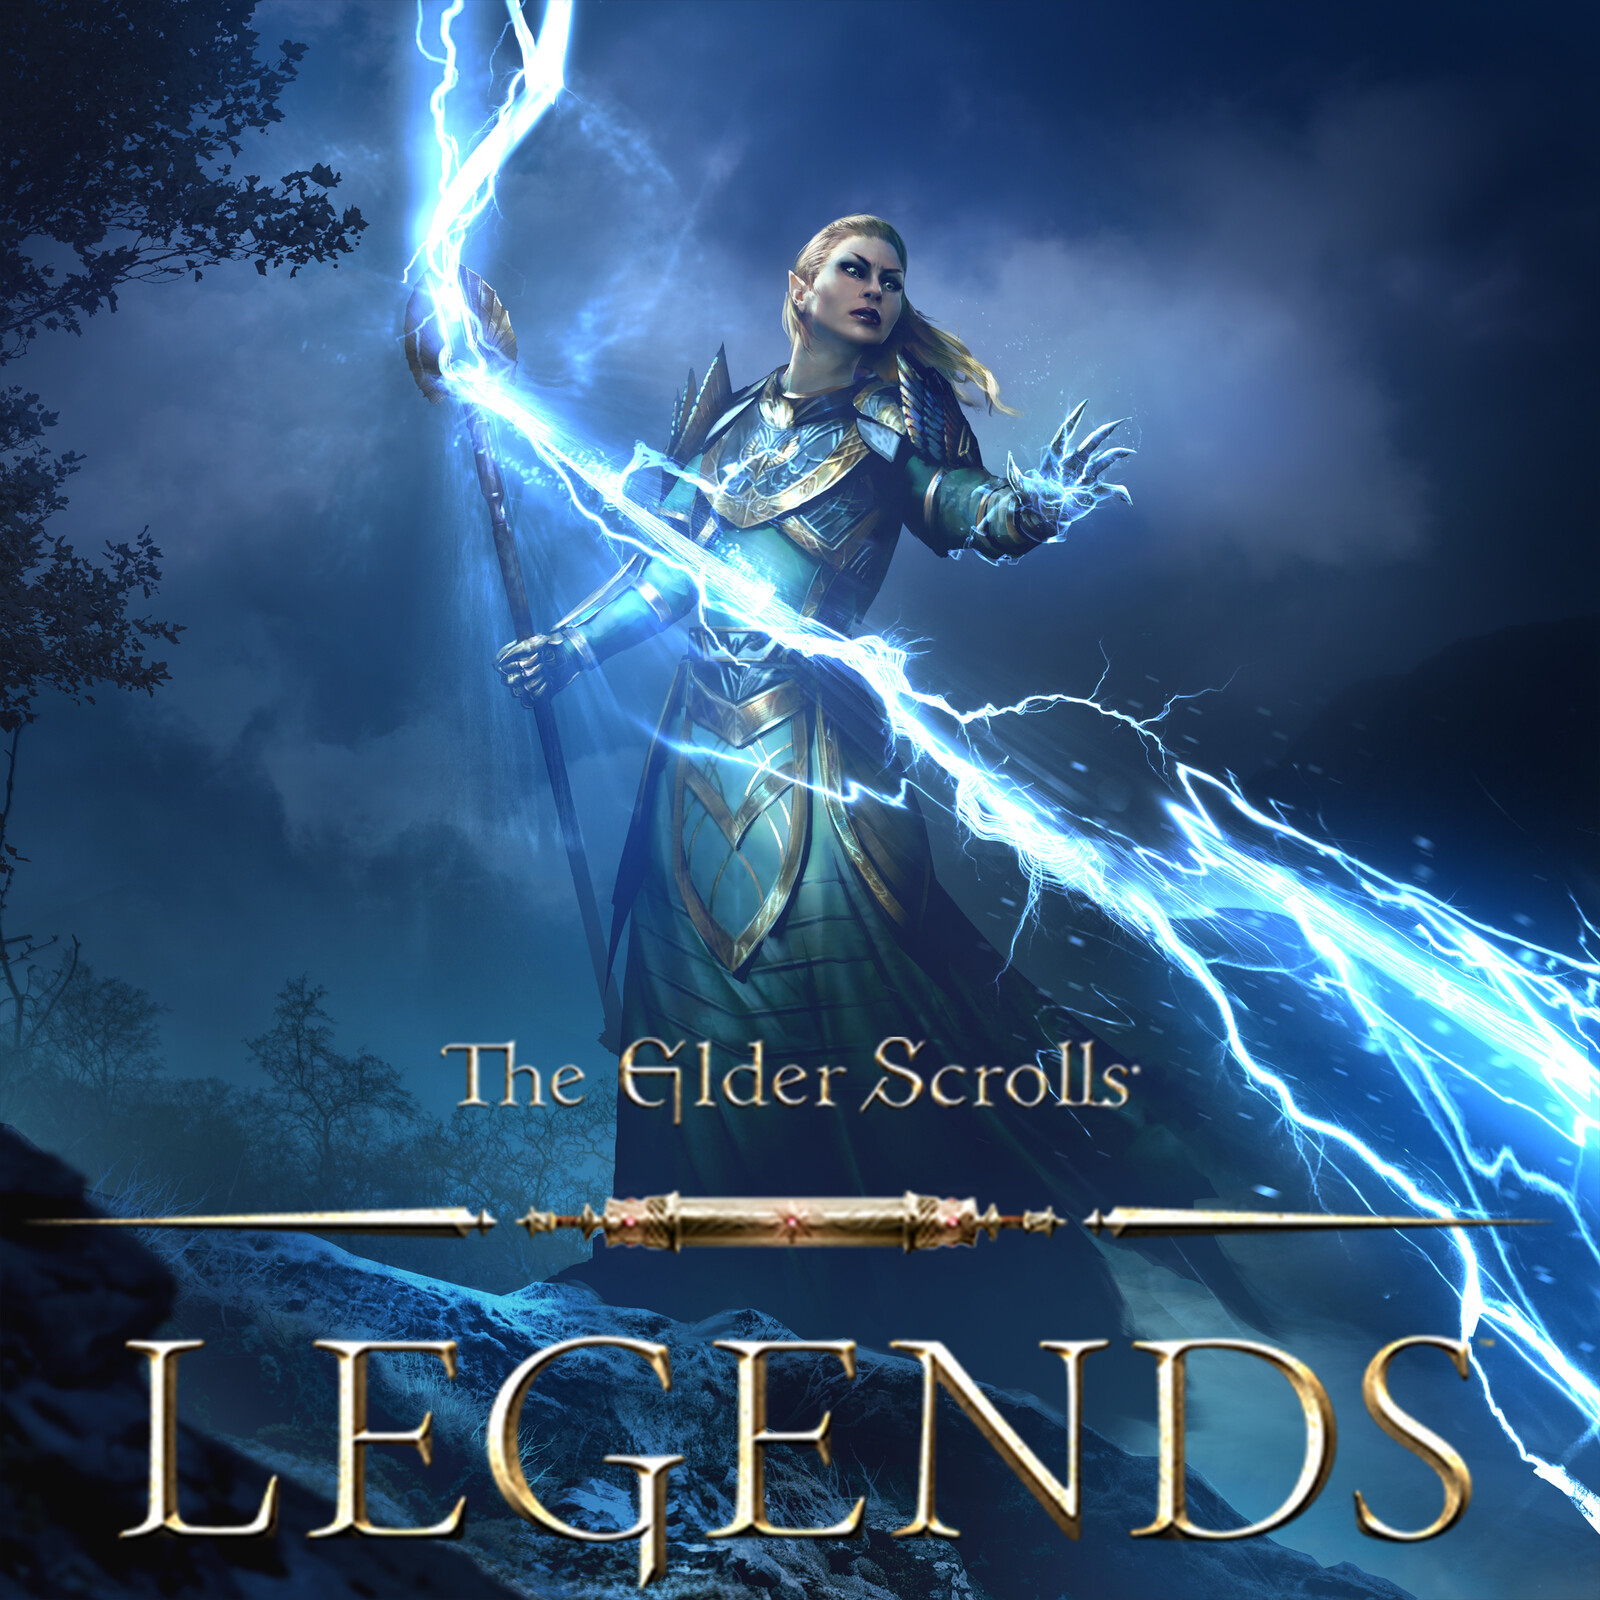 Forked Bolt - The Elder Scrolls: Legends